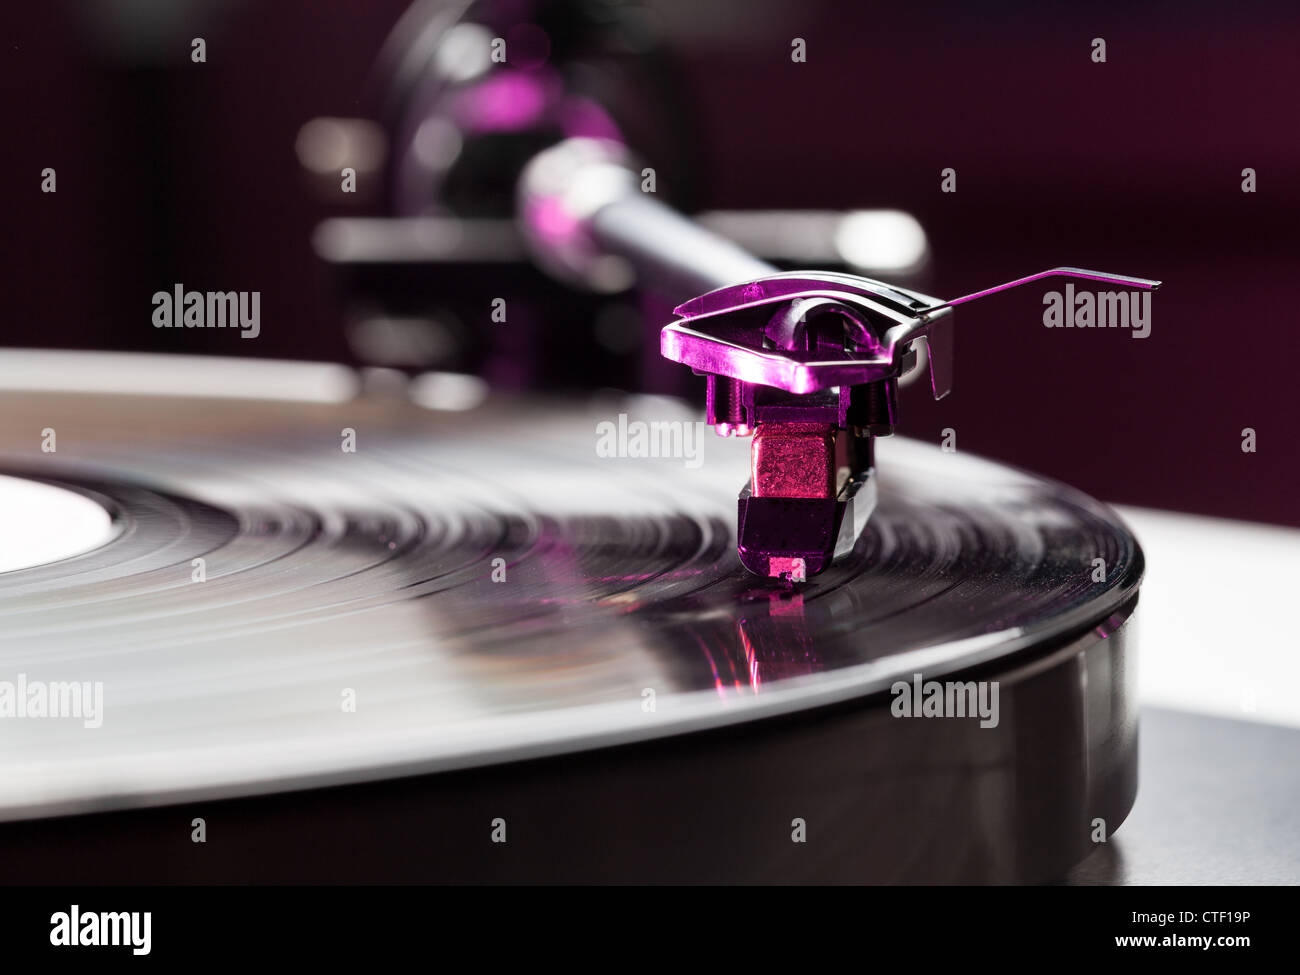 LP record on retro record player turntable with tone arm and cartridge - Stock Image